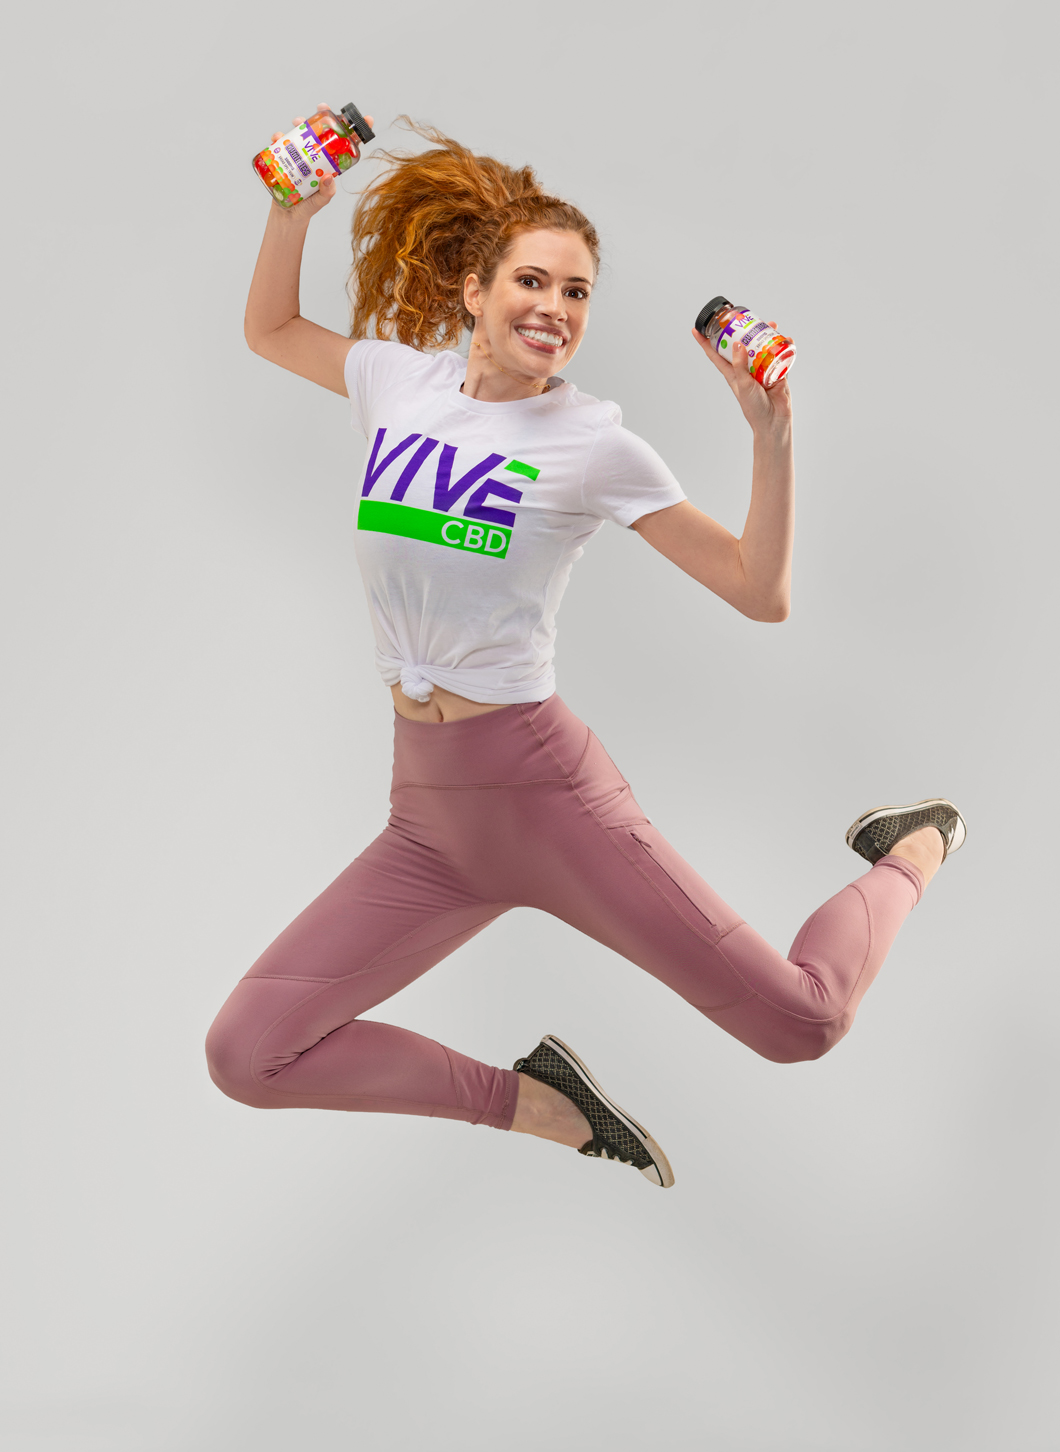 professional model jumping with health products